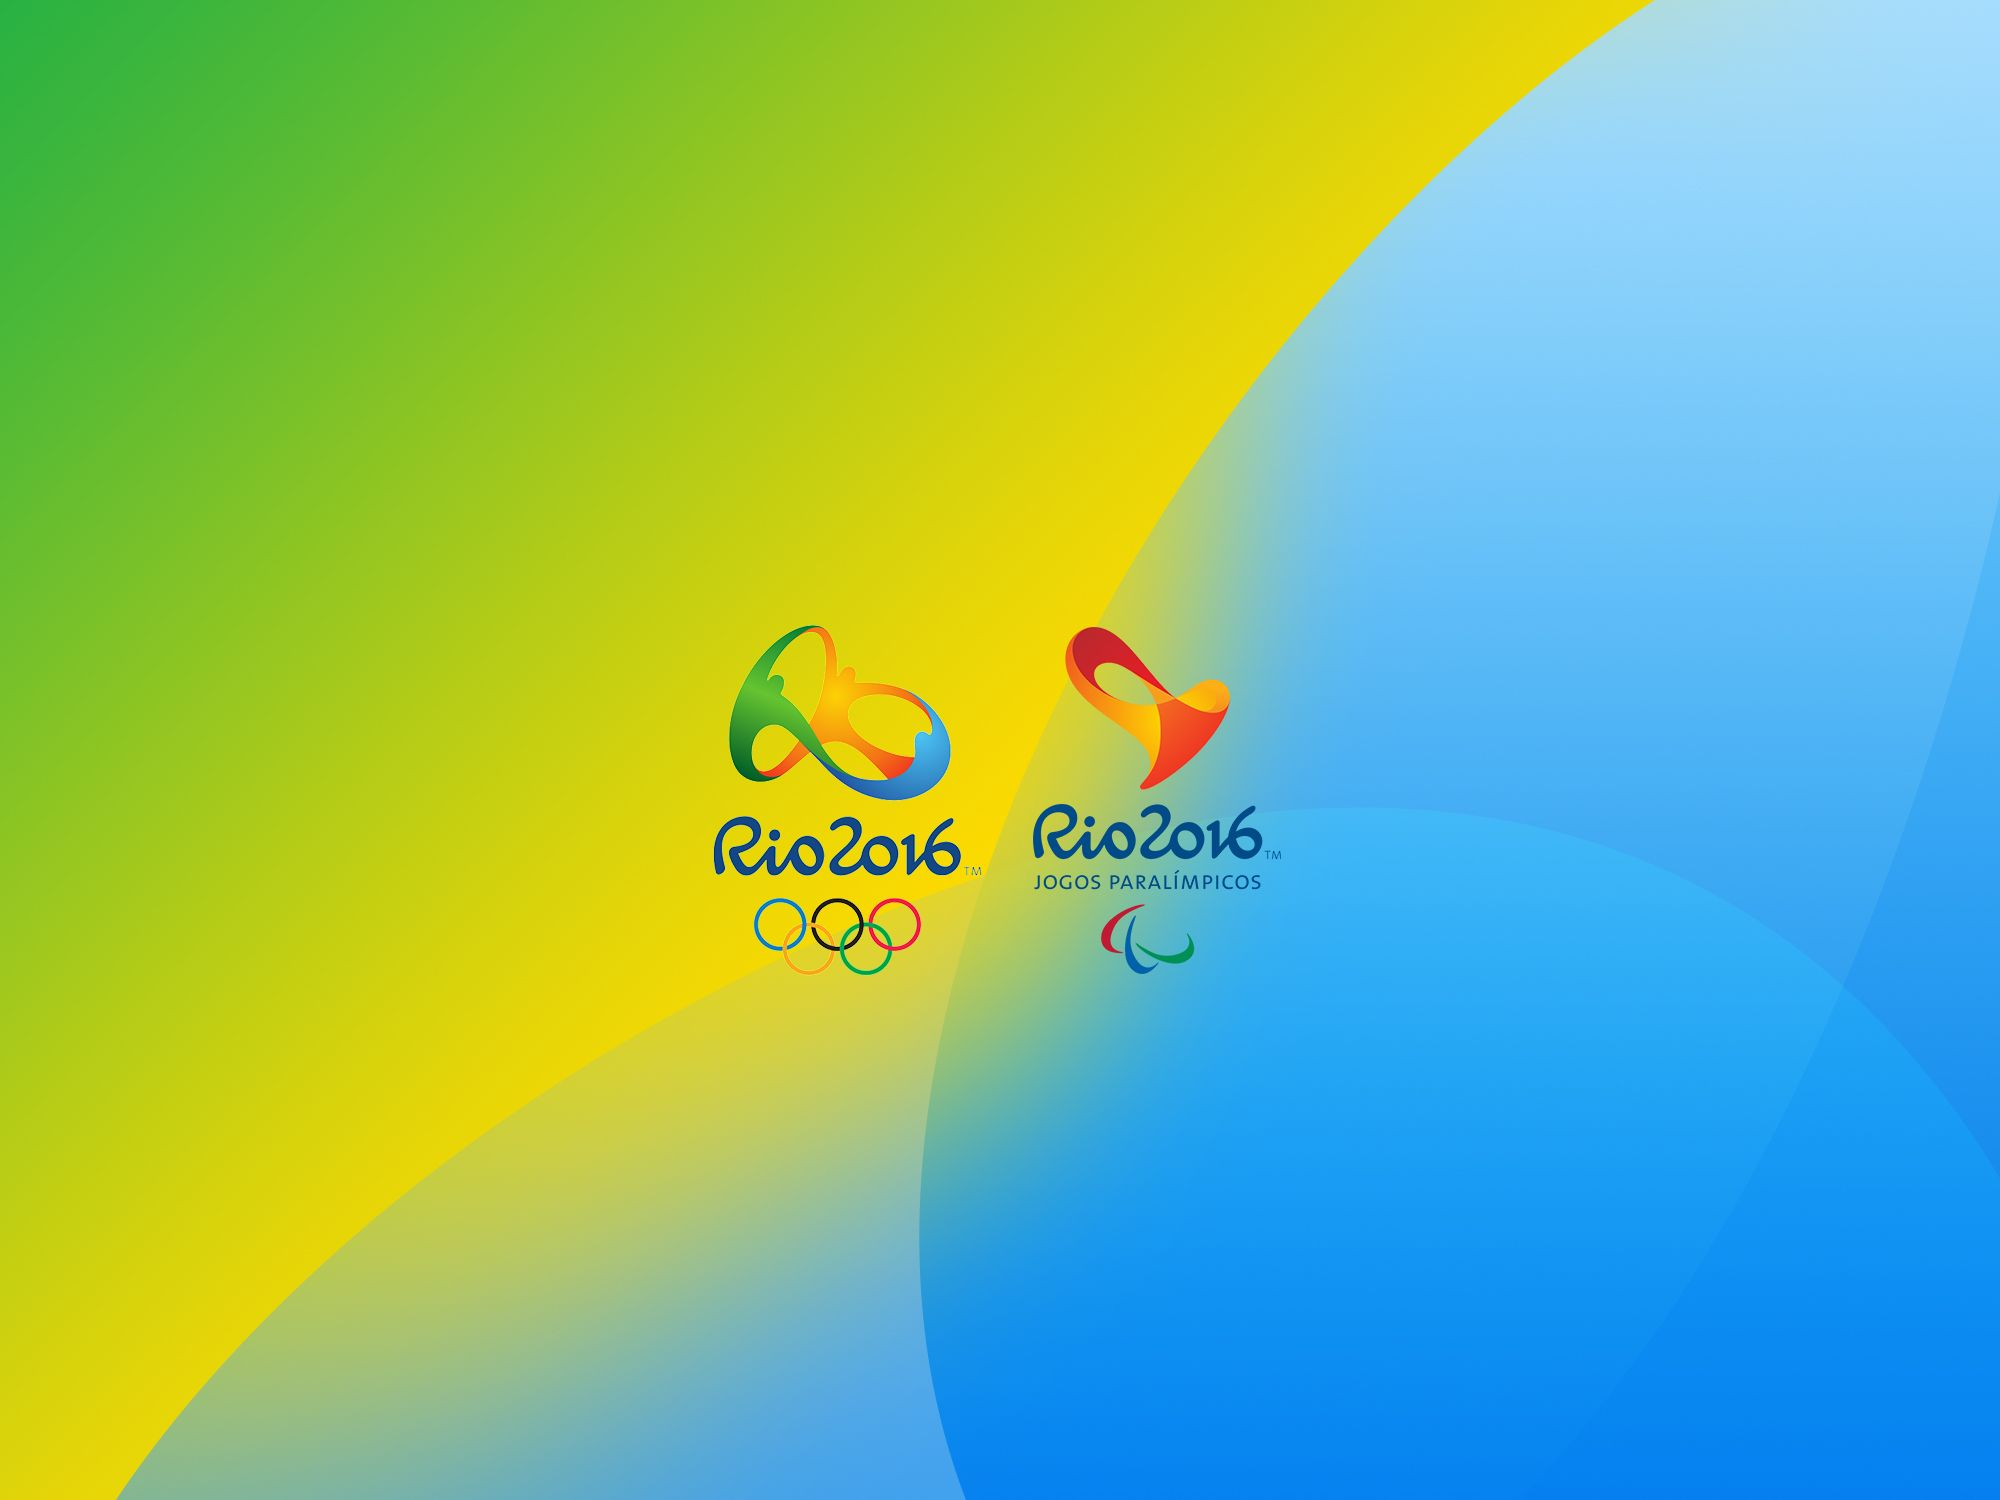 Excited for the Rio Olympics this year?! We, at The Travel Visa Company, have devised a useful little guide to let you know the travel requirements to Brazil during this years Olympic Games. Check it out!